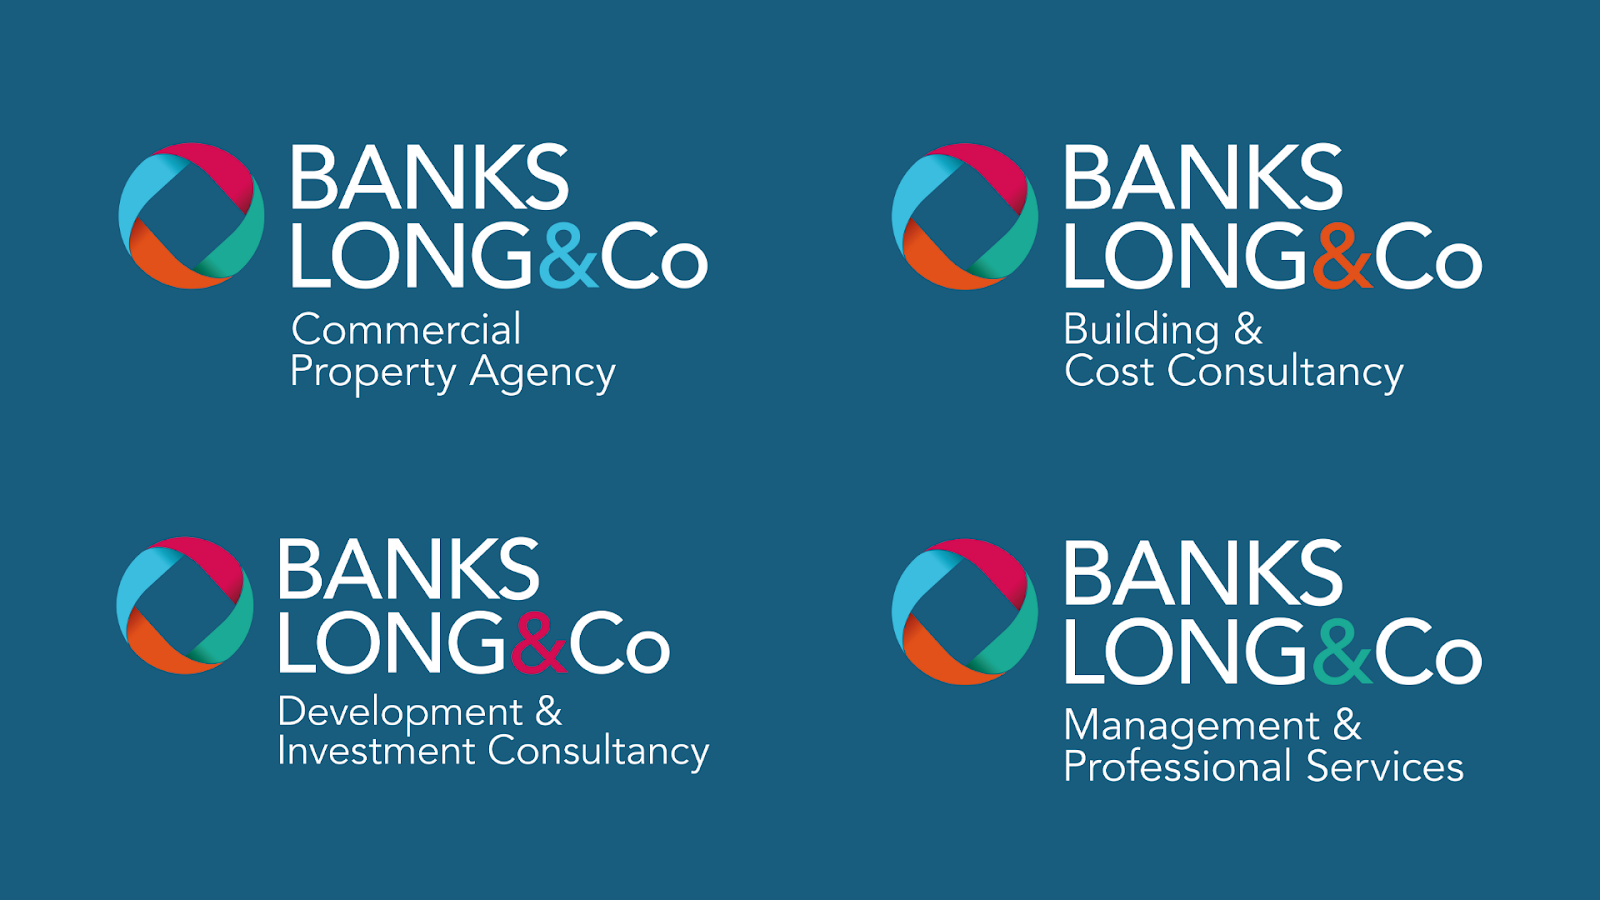 Banks Long & Co announce major relaunch & four new divisions